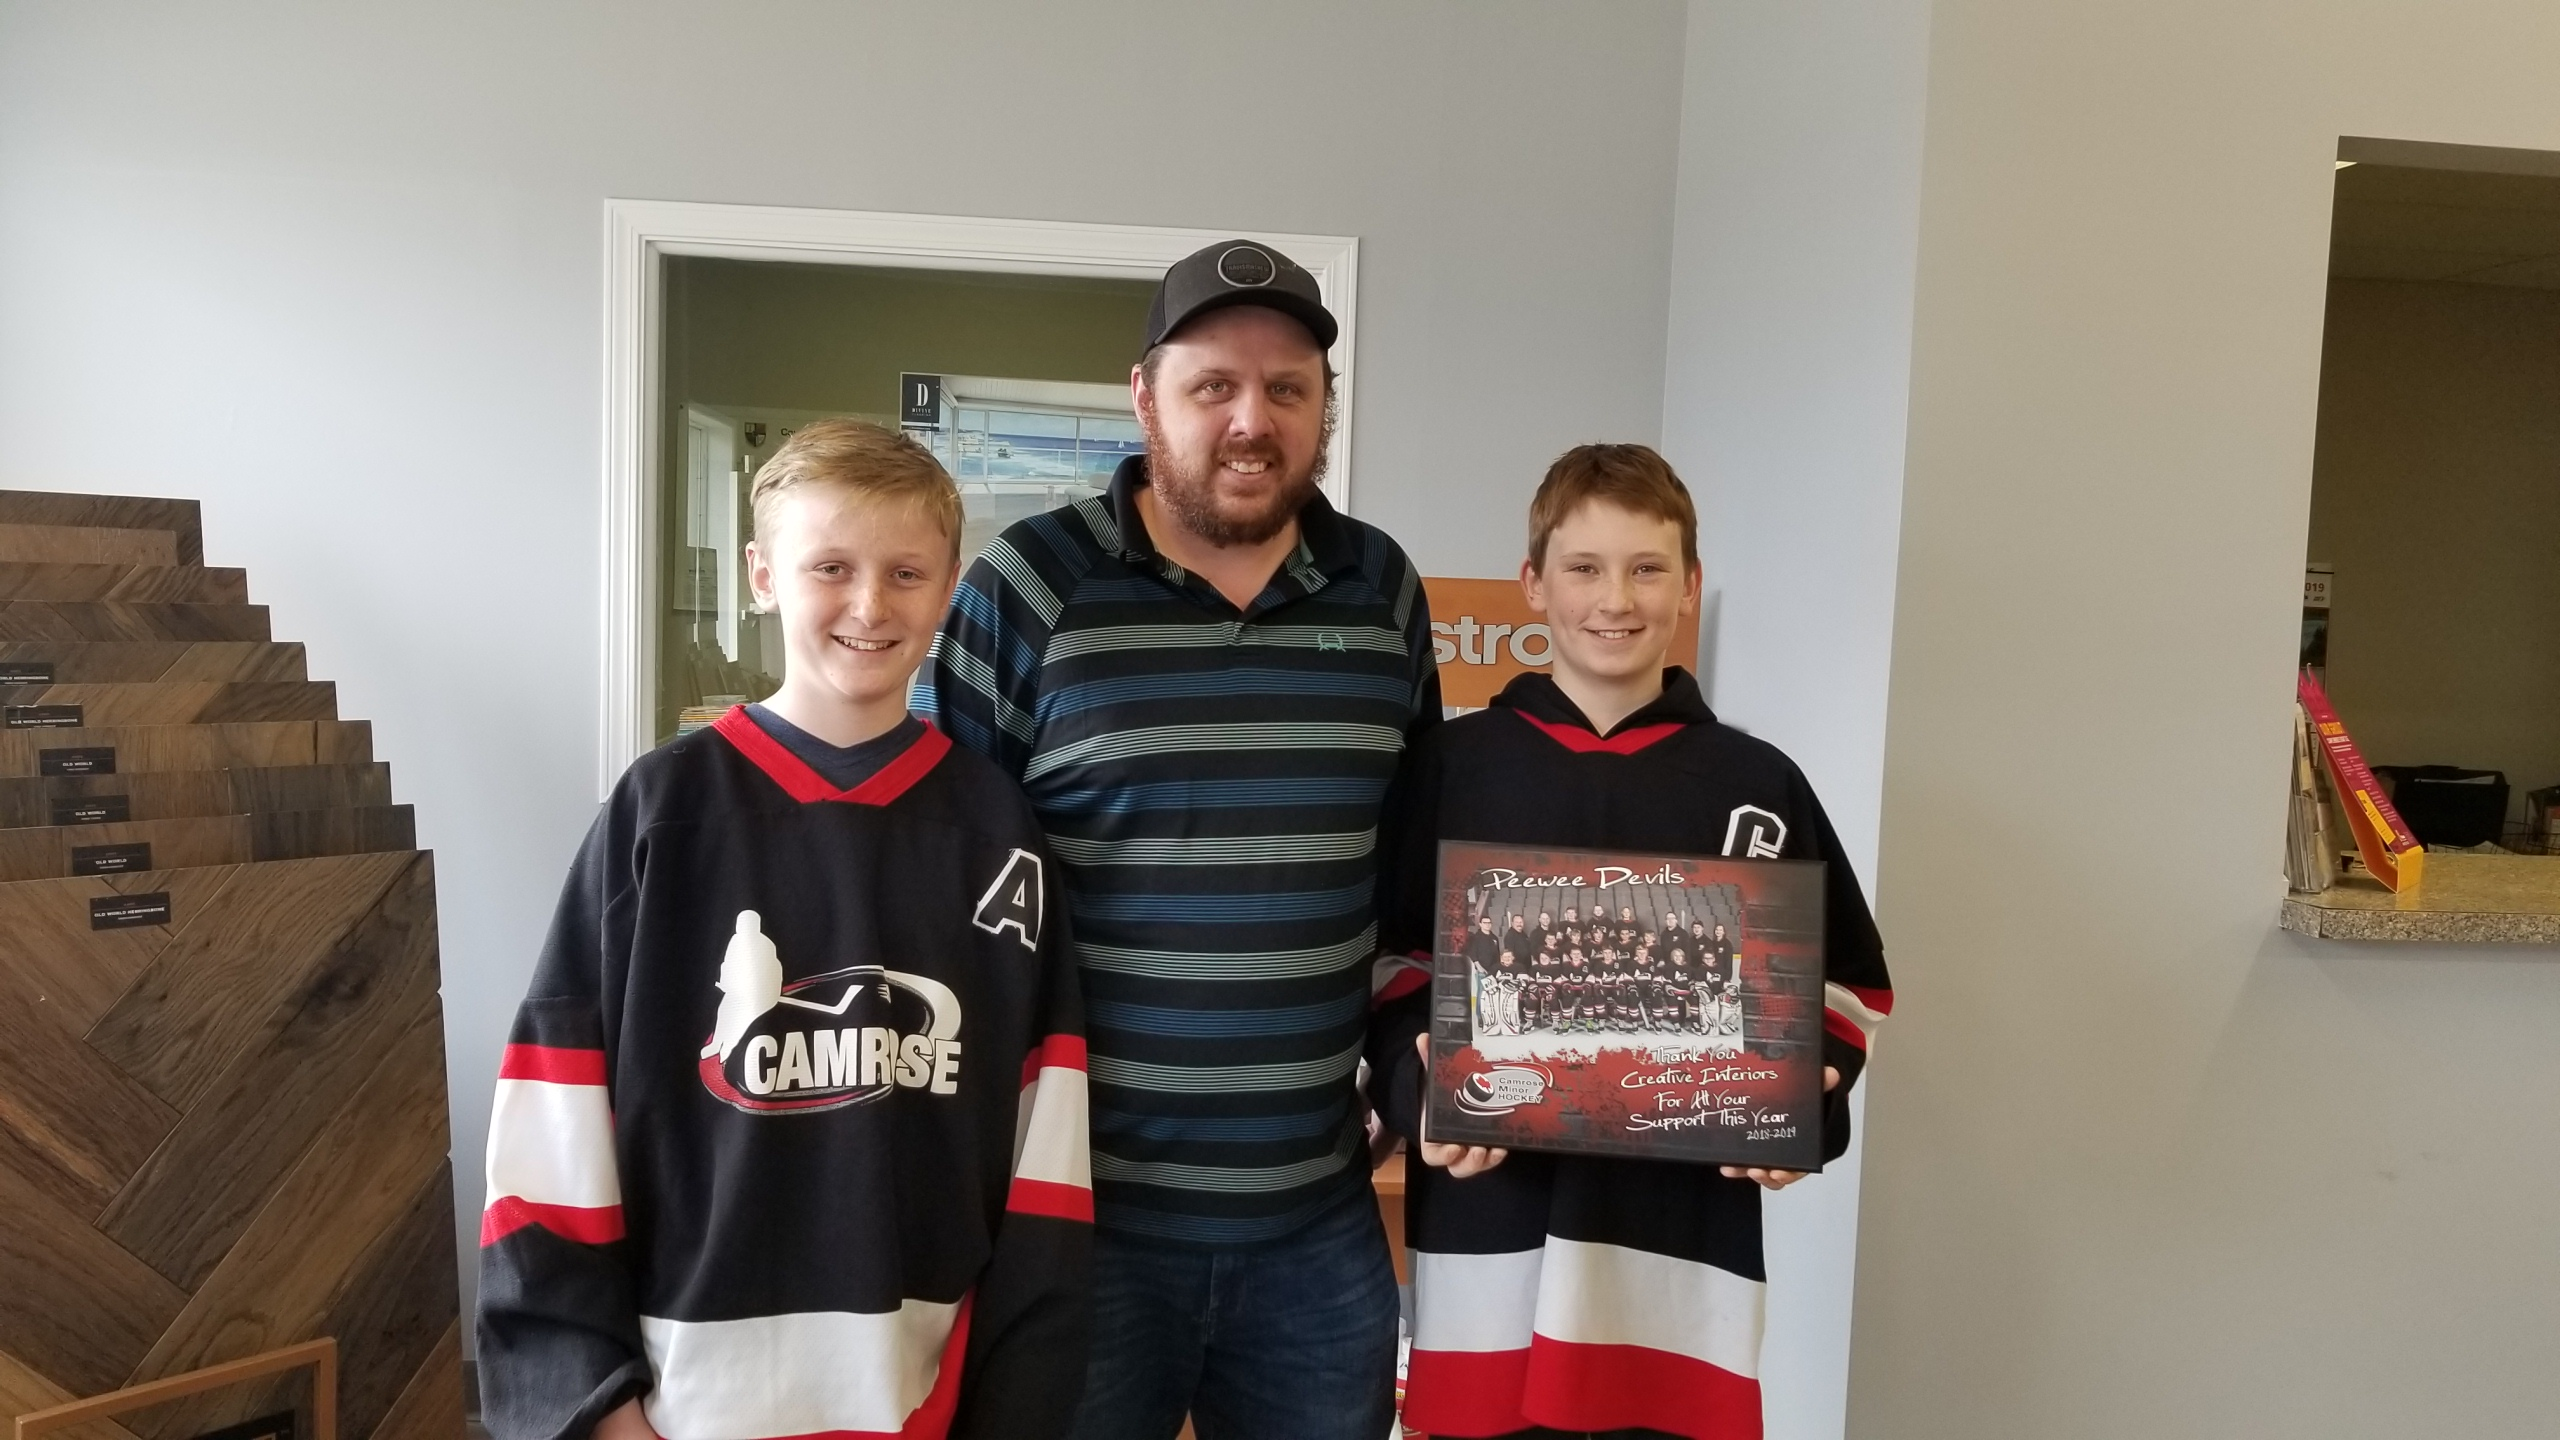 Thank you to Creative Interiors for sponsoring the Peewee Devils